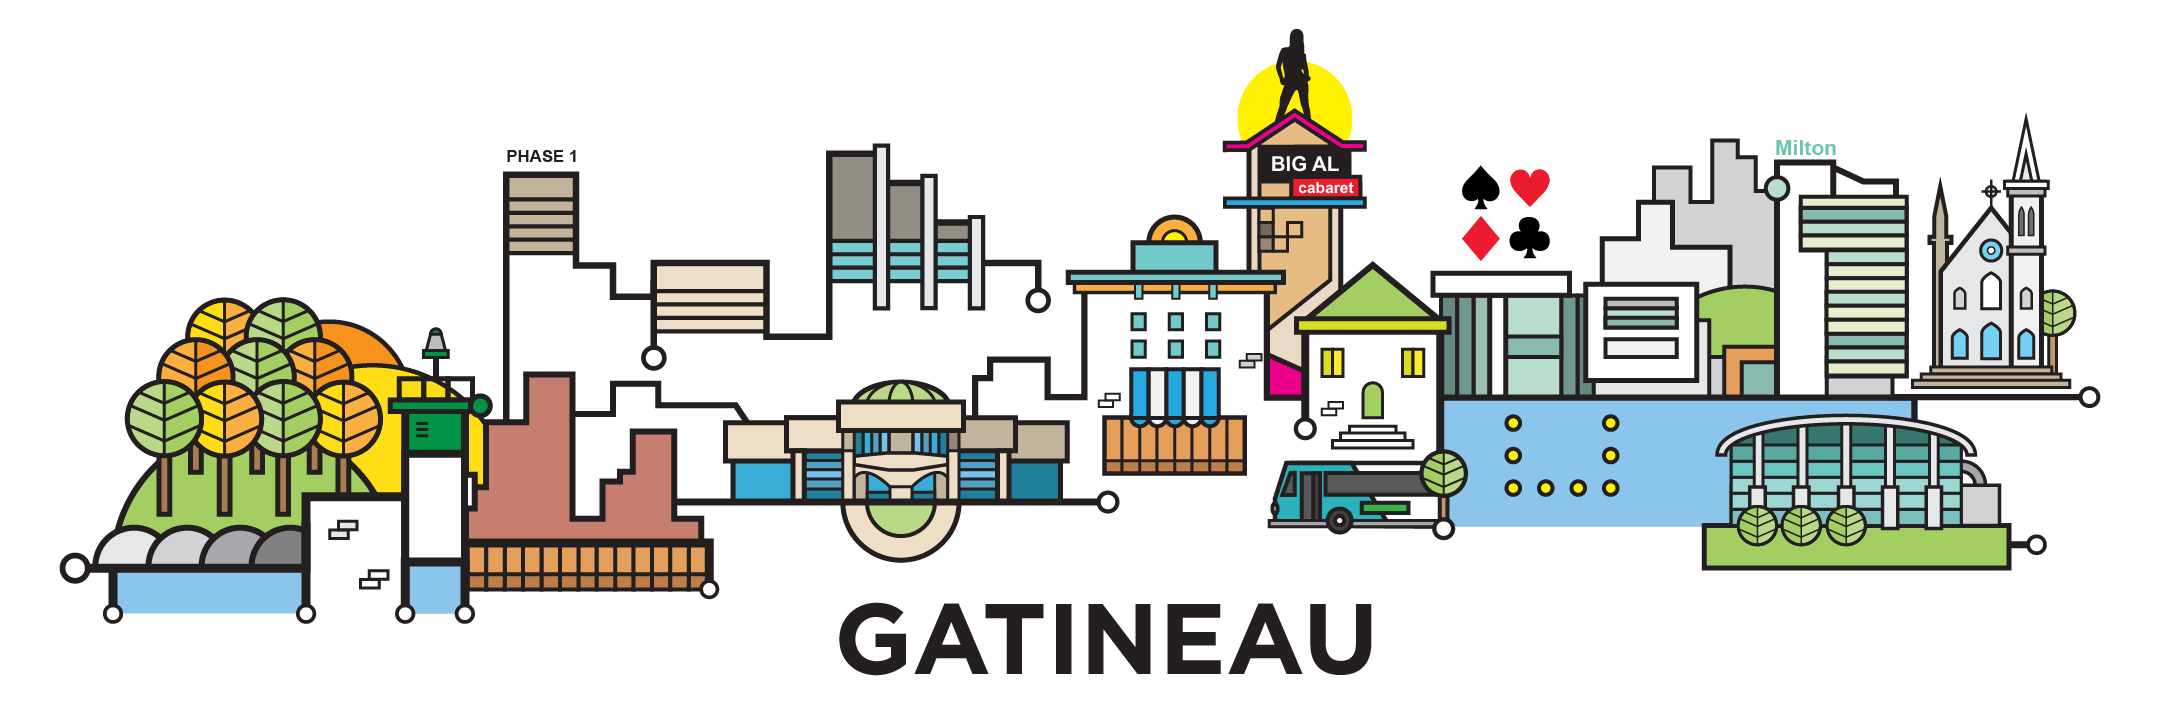 gatineau-cityline-illustration-by-loogart